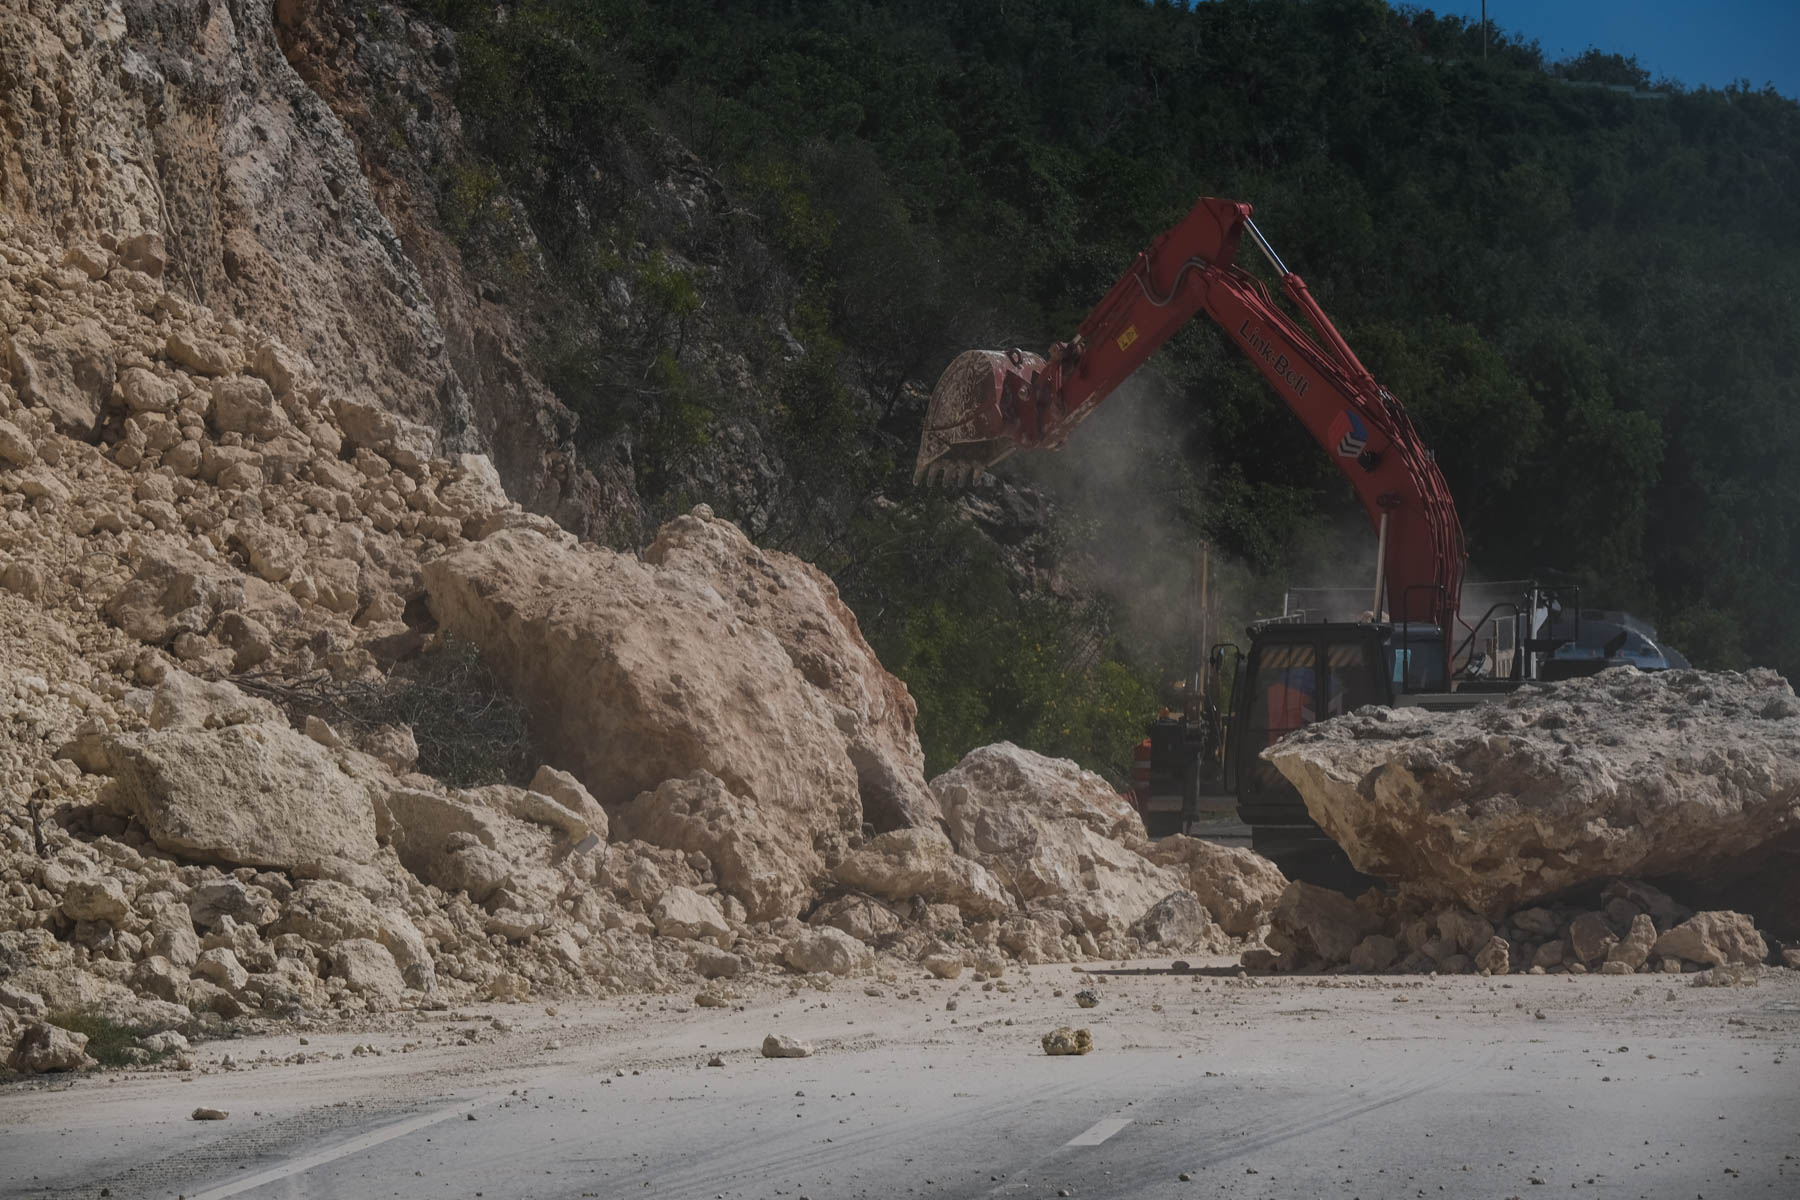 A landslide is seen on the road near El Tuque on January 7th, 2020 after two earthquakes.